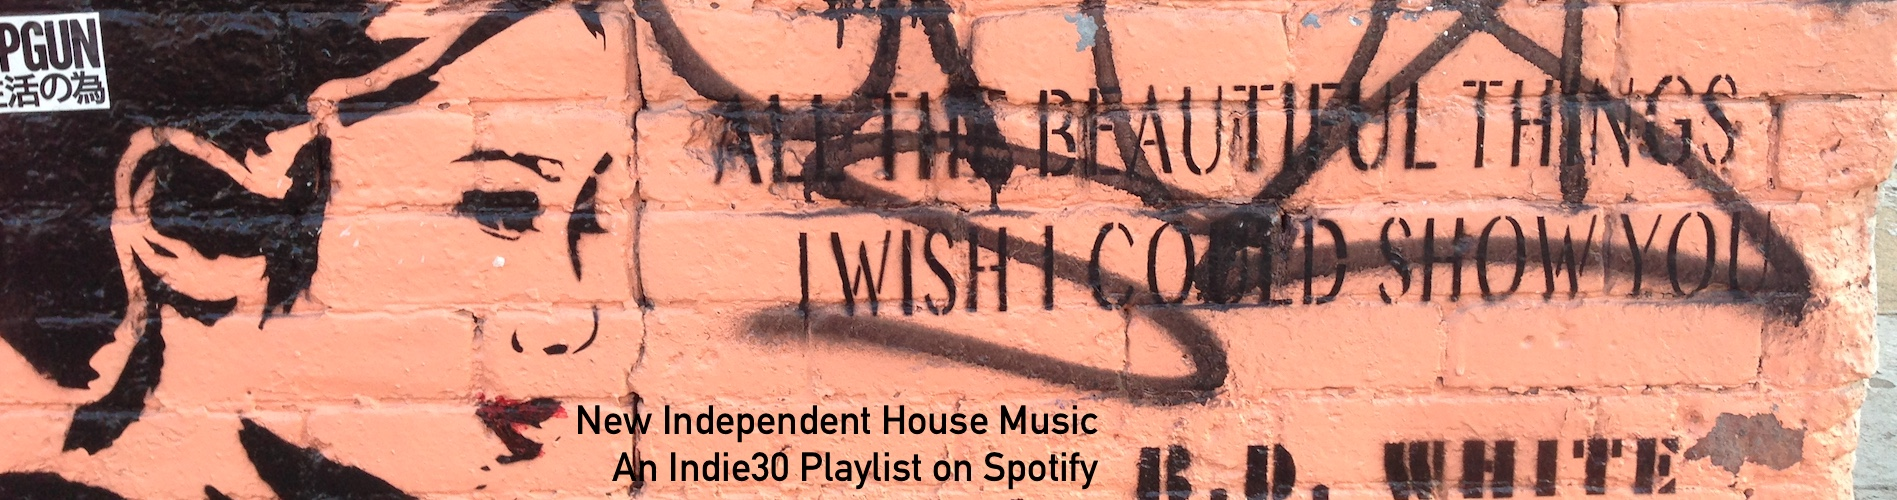 indie30.com-New-Independent-House-Music-Banner